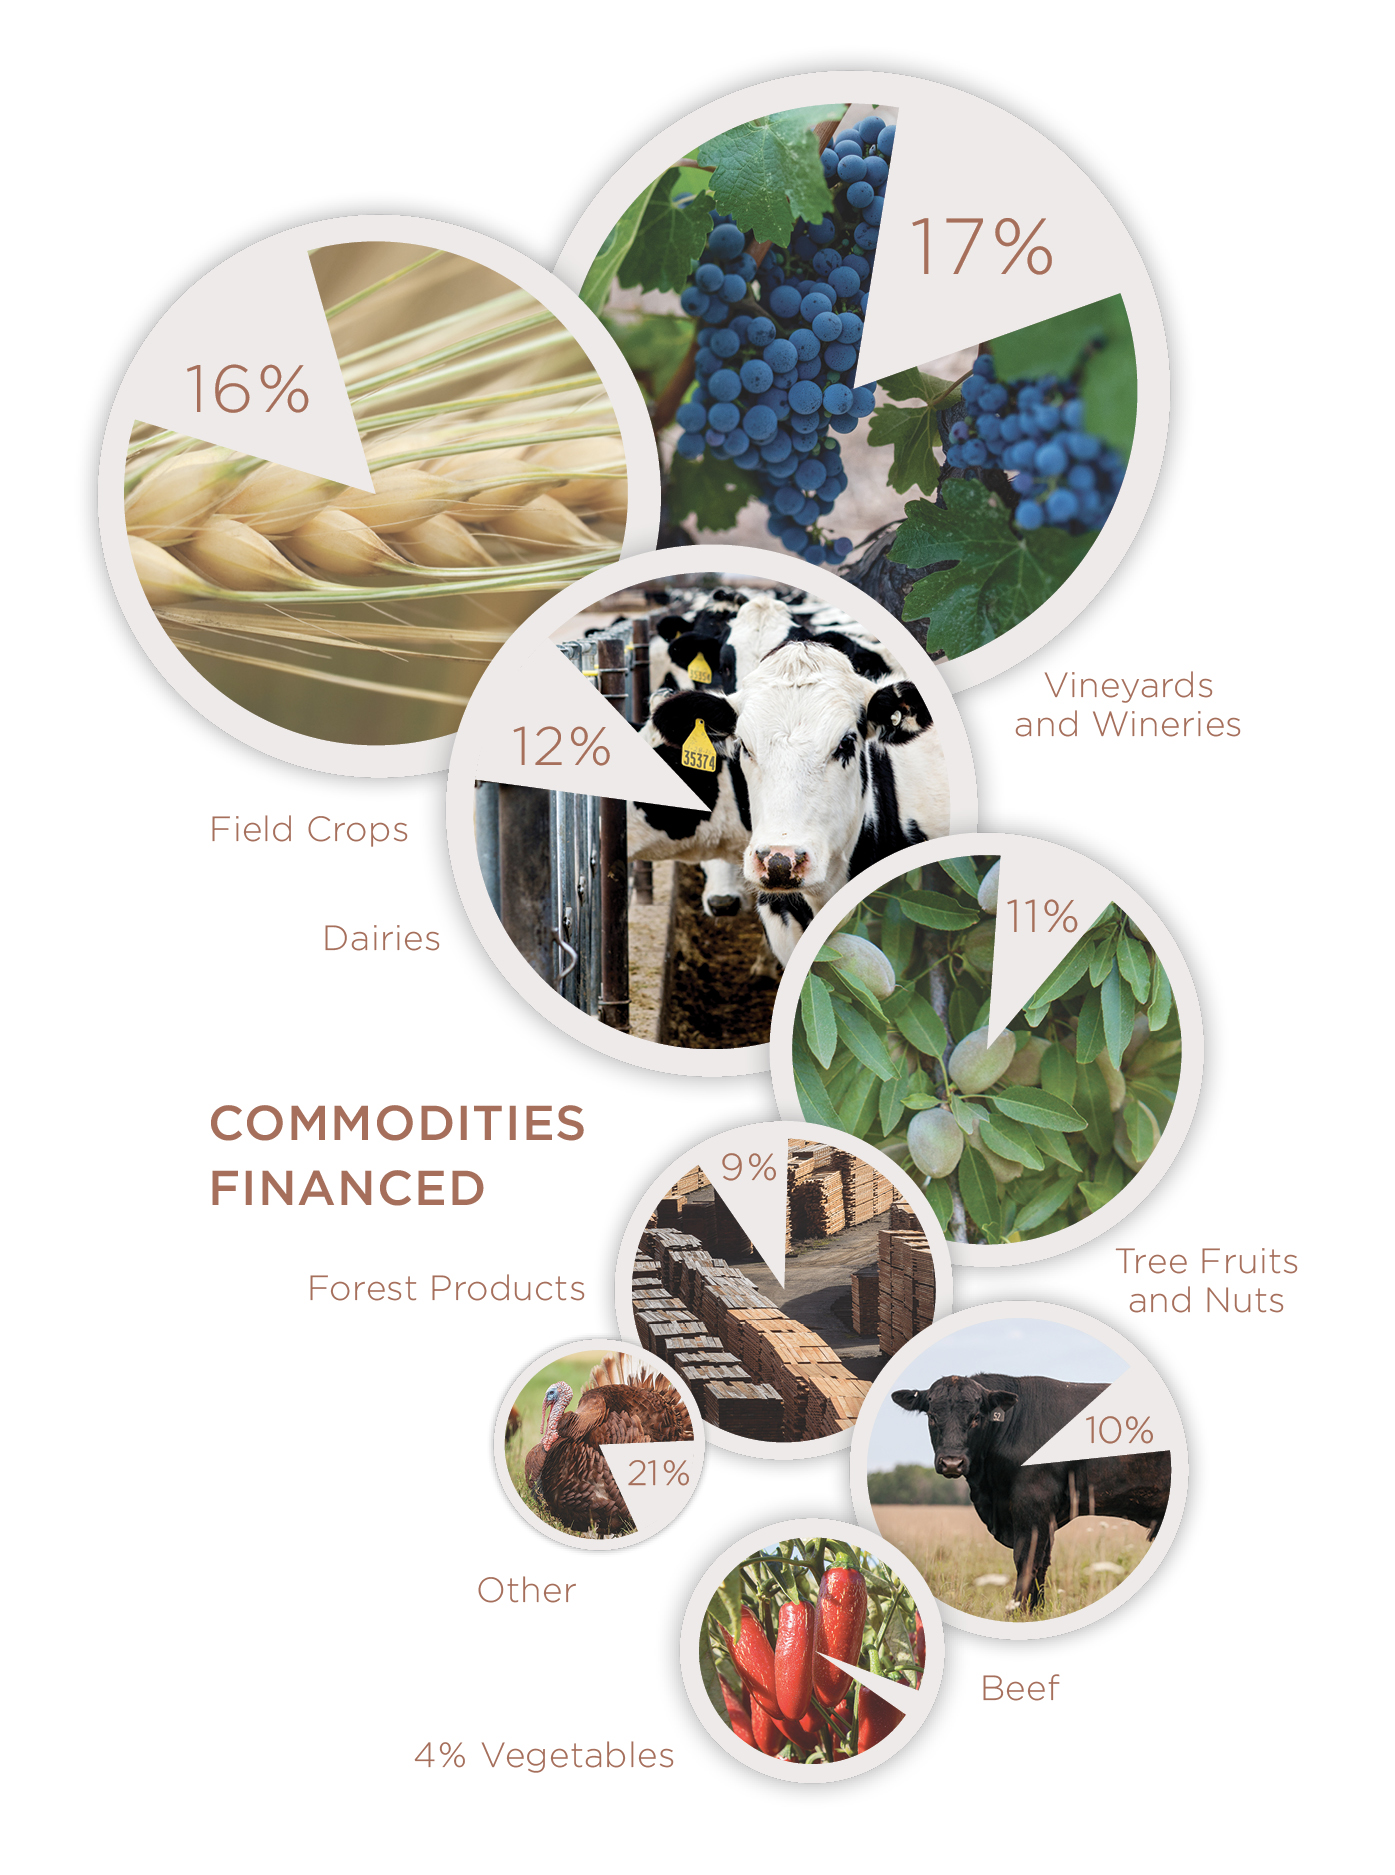 Commodities Financed. Vineyards & Wineries: 17%, Field Crops: 16%, Dairies: 12%, Tree Fruits & Nuts: 11%, Forest Products: 9%, Beef: 10%, Other: 21%, Vegetables: 4%